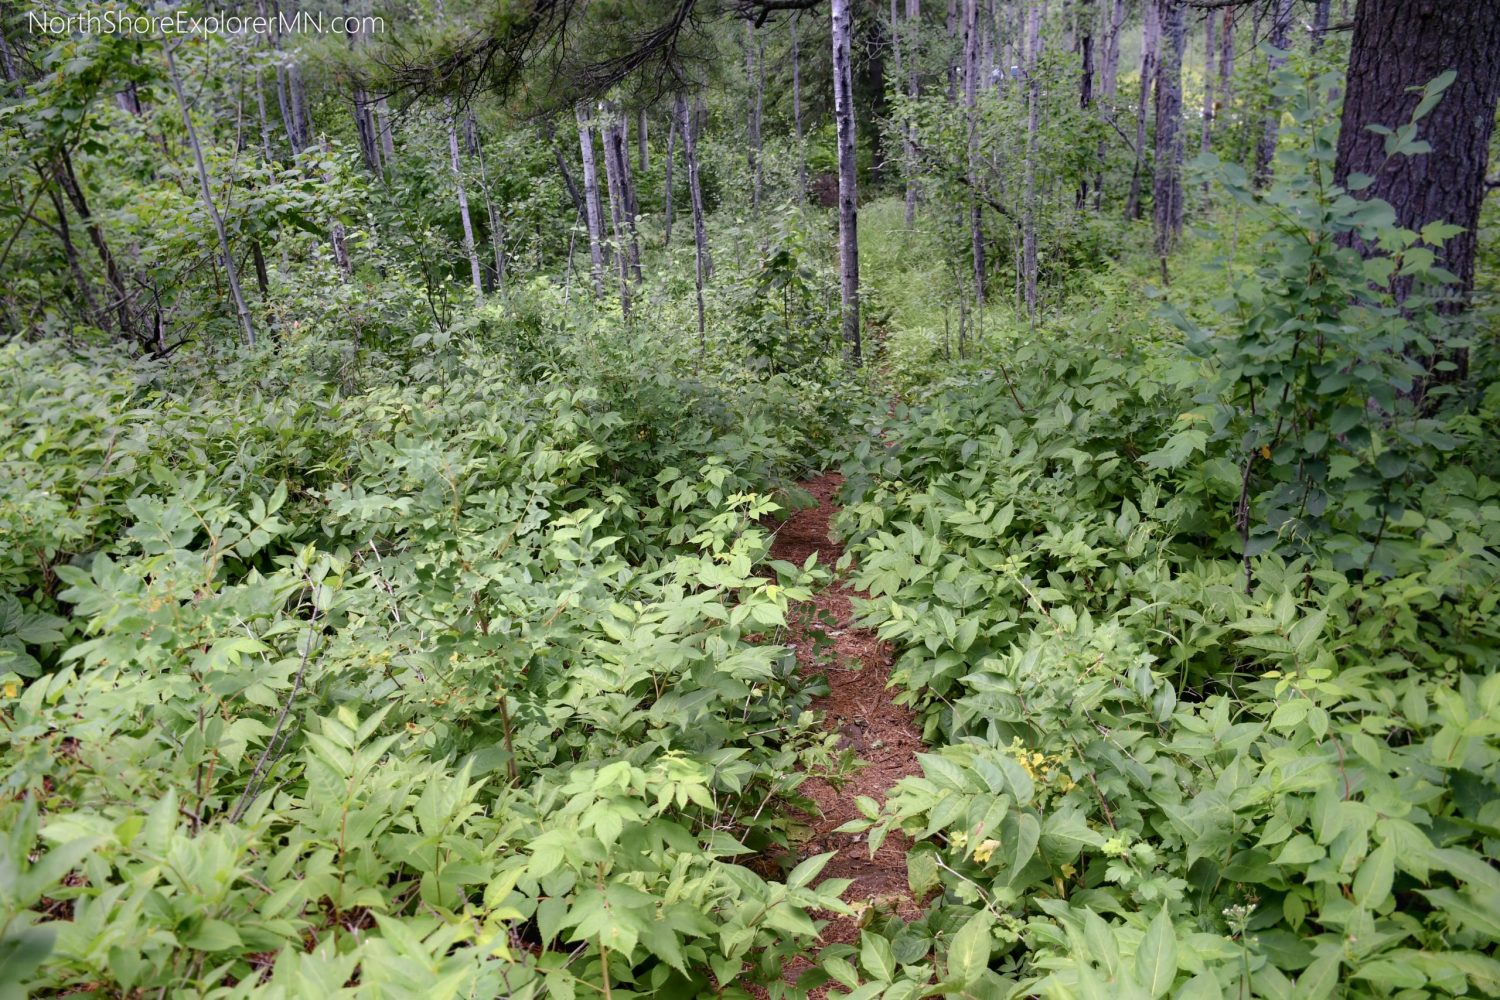 Hiking trail to Chrystal Cliffs, Tettegouche State Park